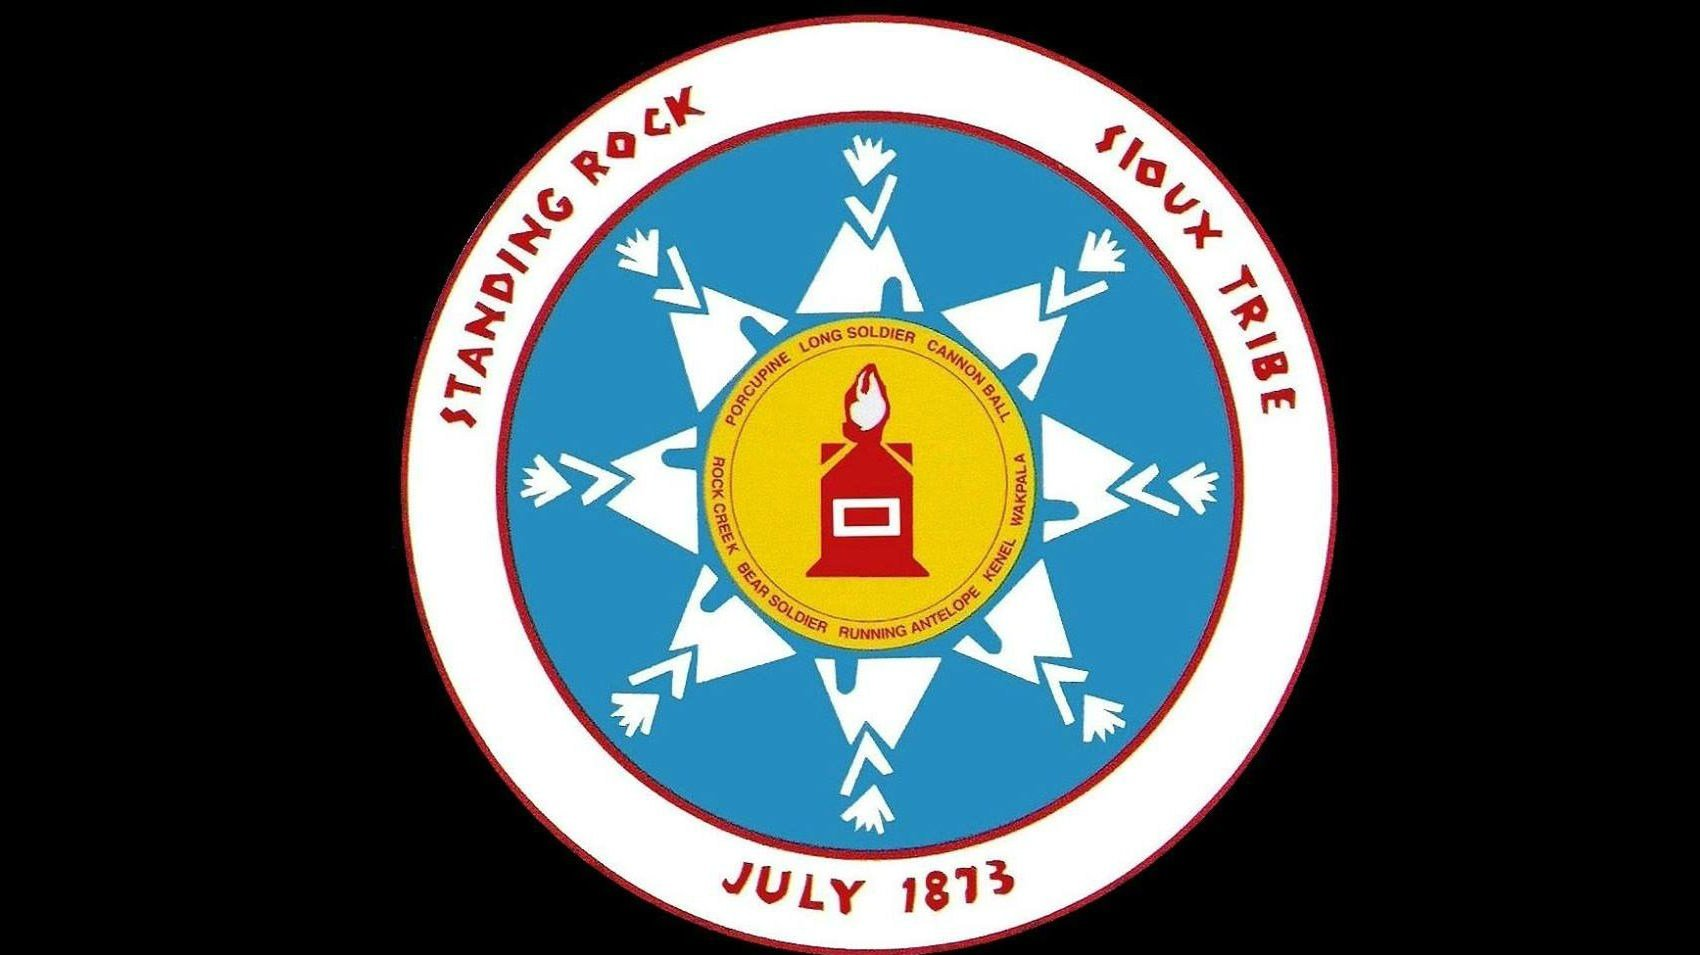 Standing Rock Sioux Tribe calls on President Trump to honor the EIS process